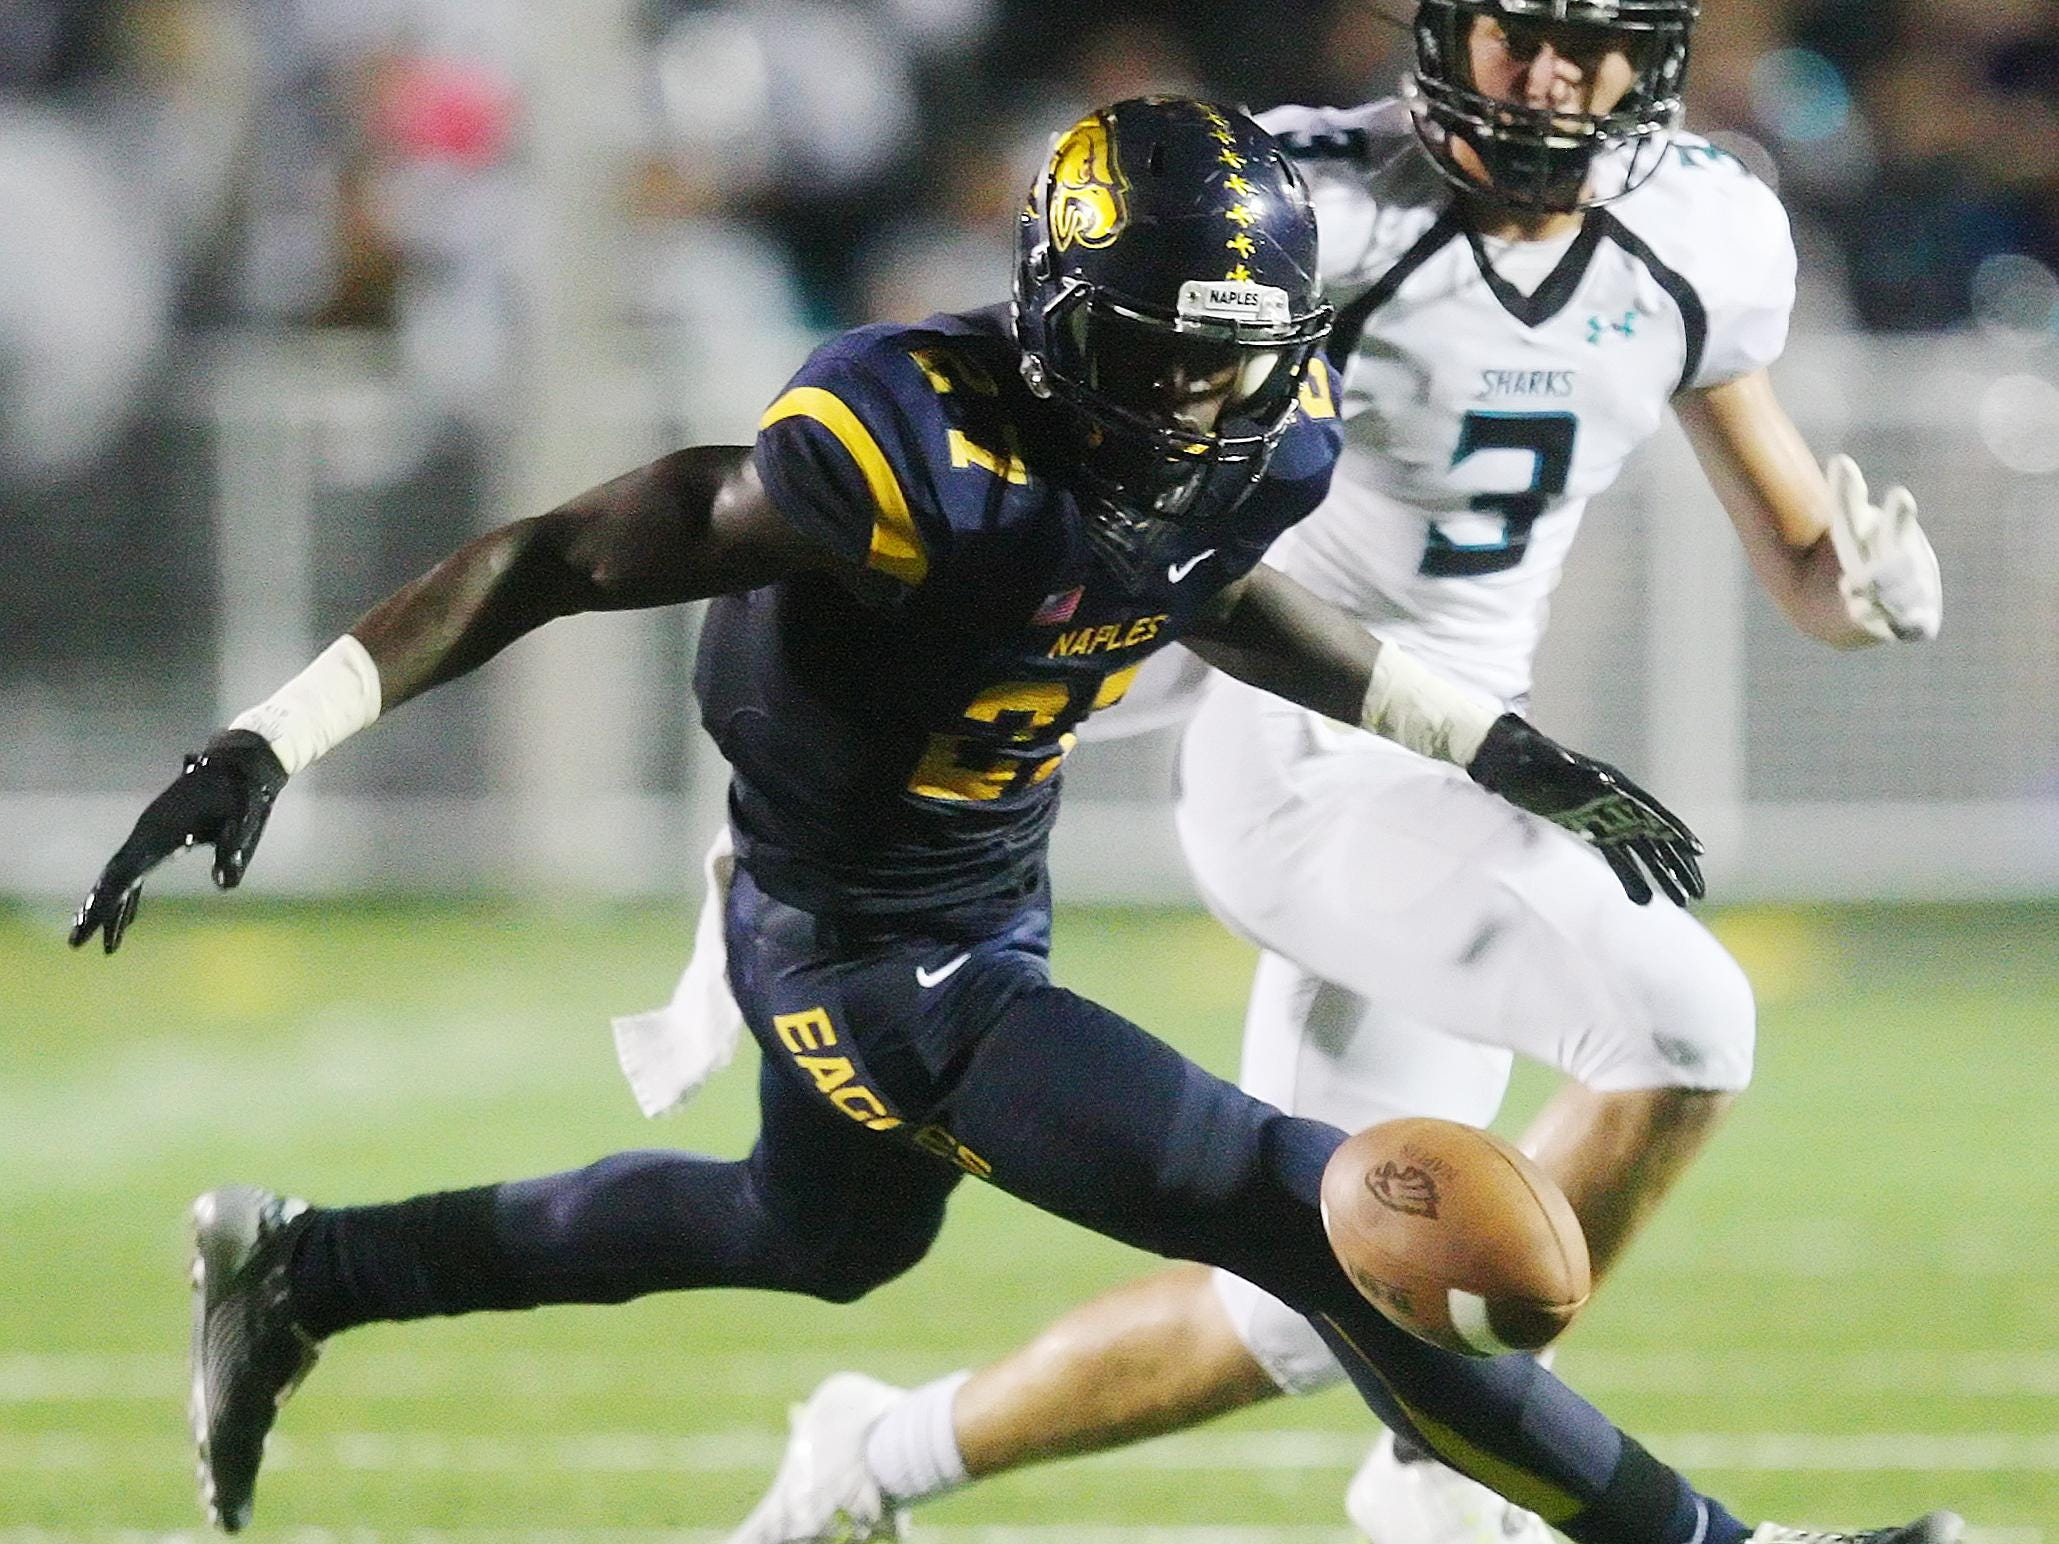 Naples High School's Carlin Fils-Aime recovers a fumble against Gulf Coast on Friday at Naples High School.